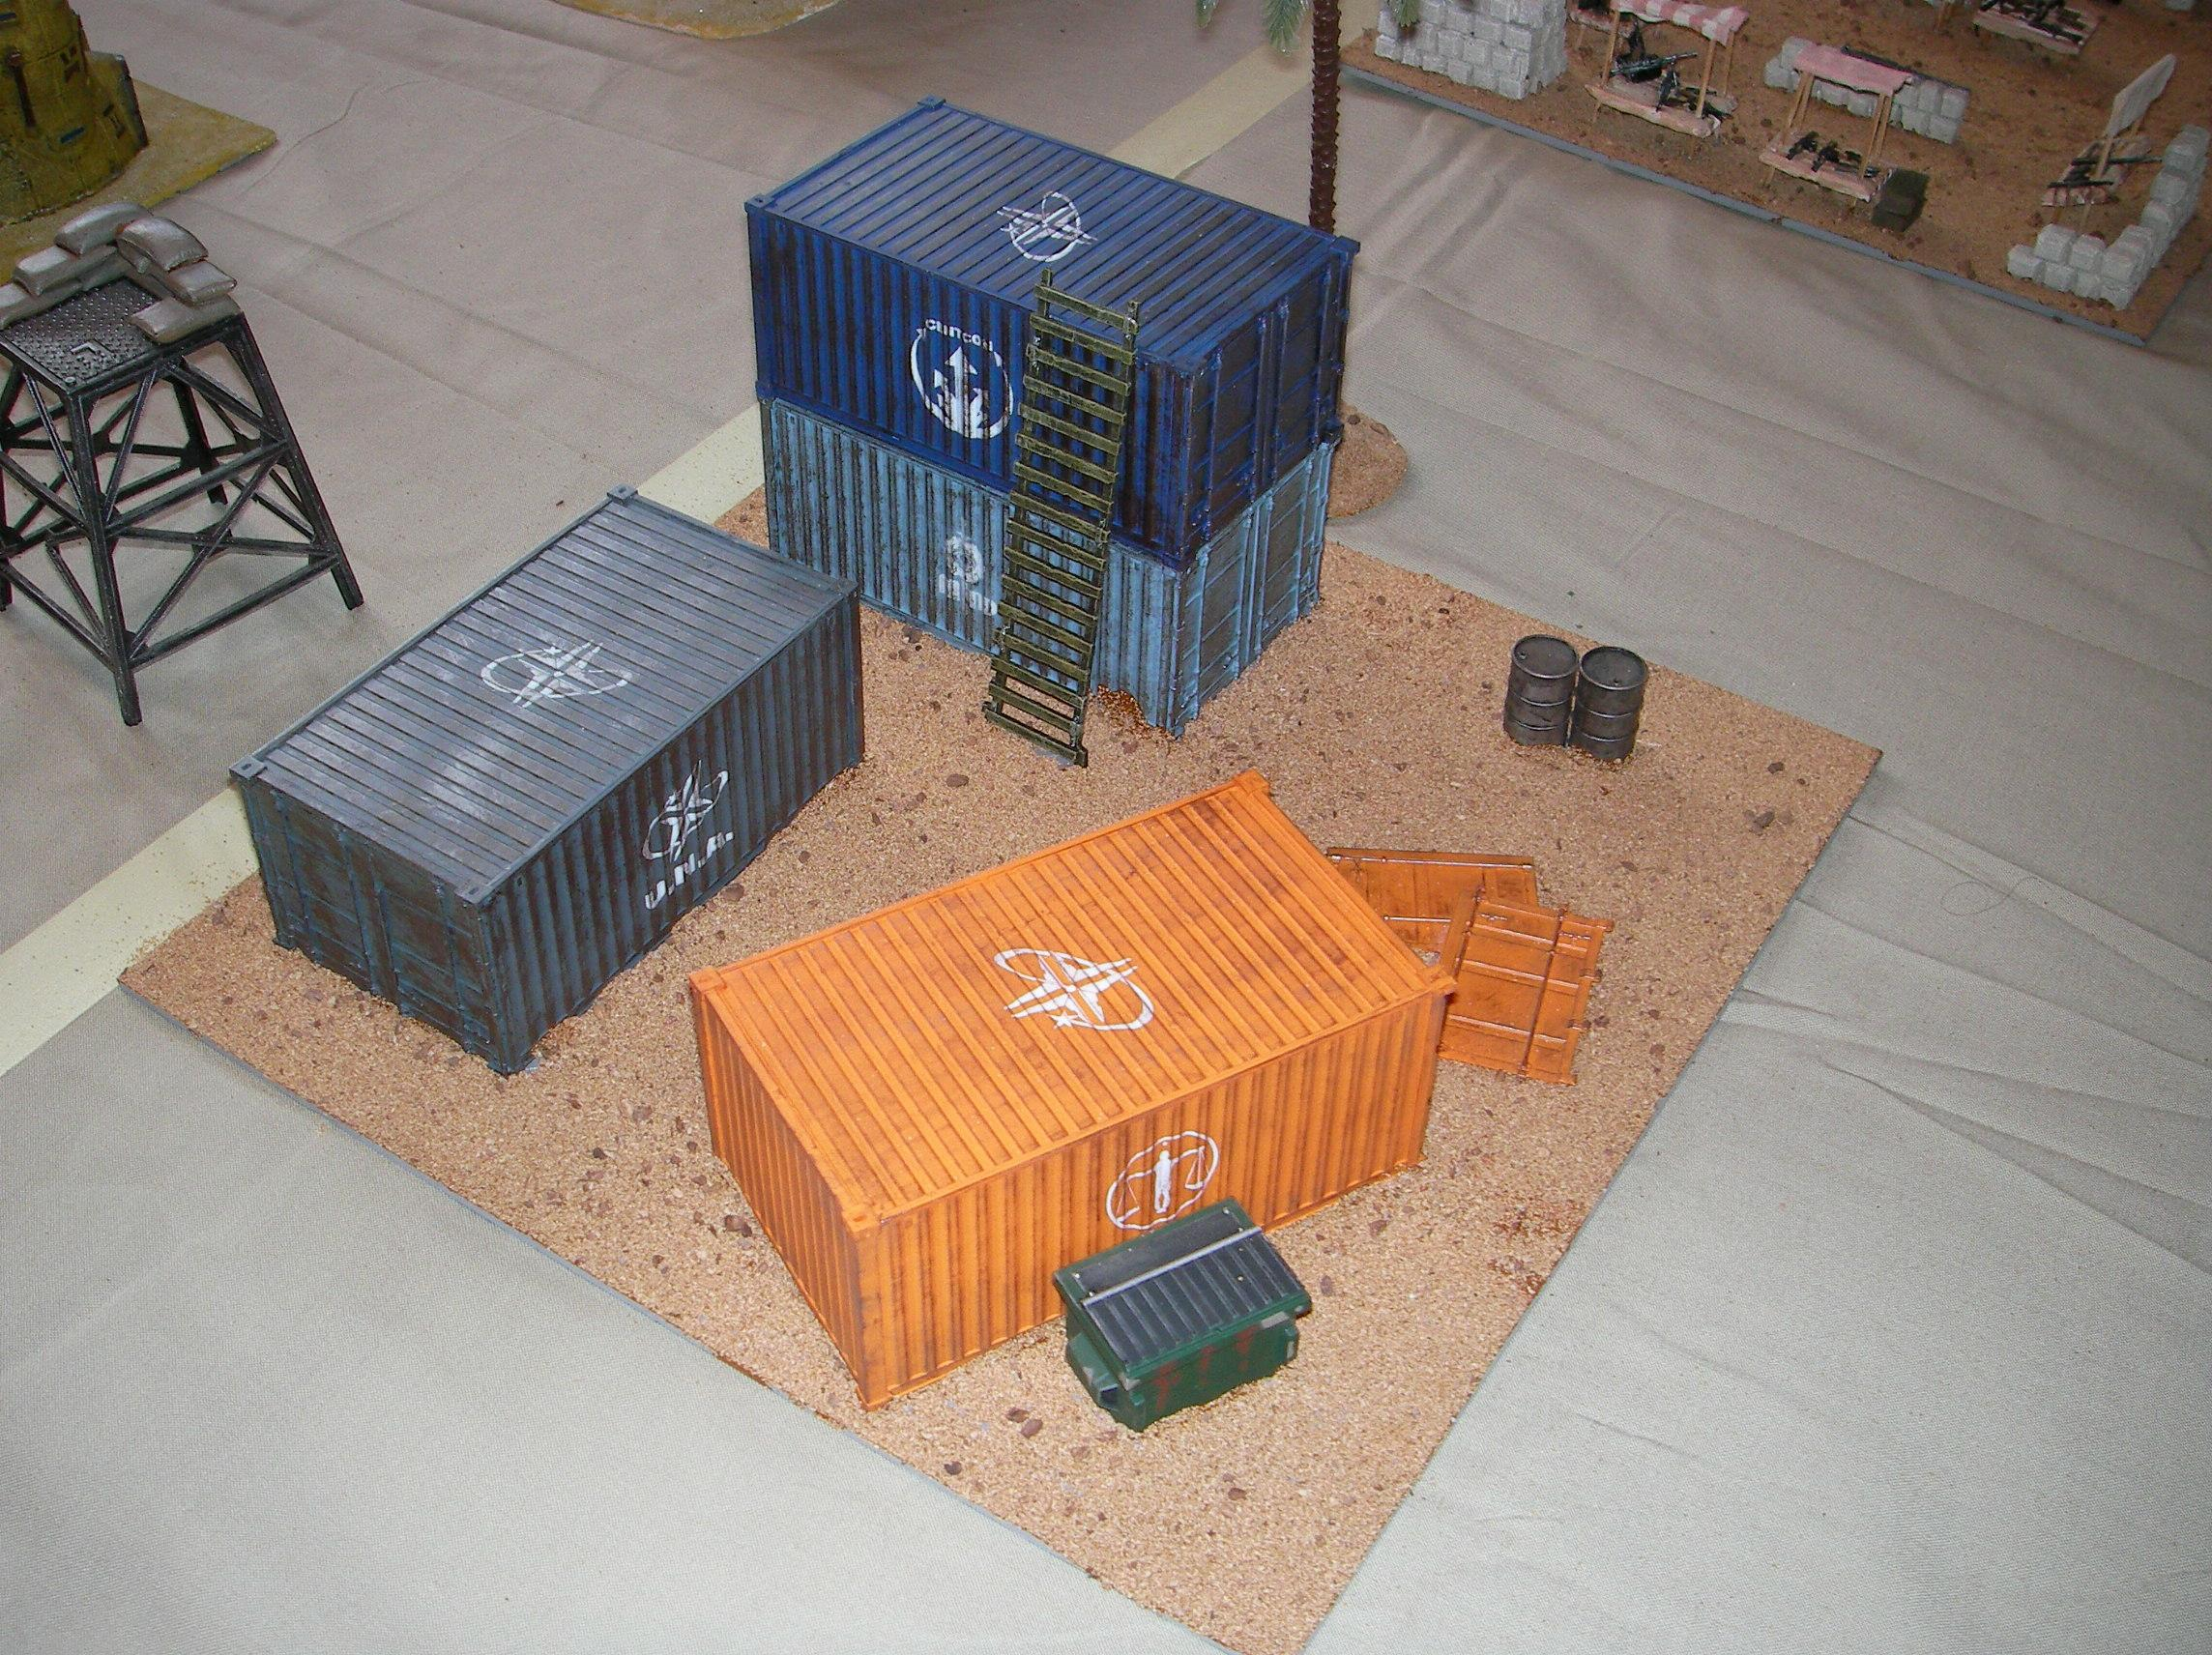 Container, Evolution, Game Table, Iraq, Middle East, Middle Eastern, Modern, Terrain